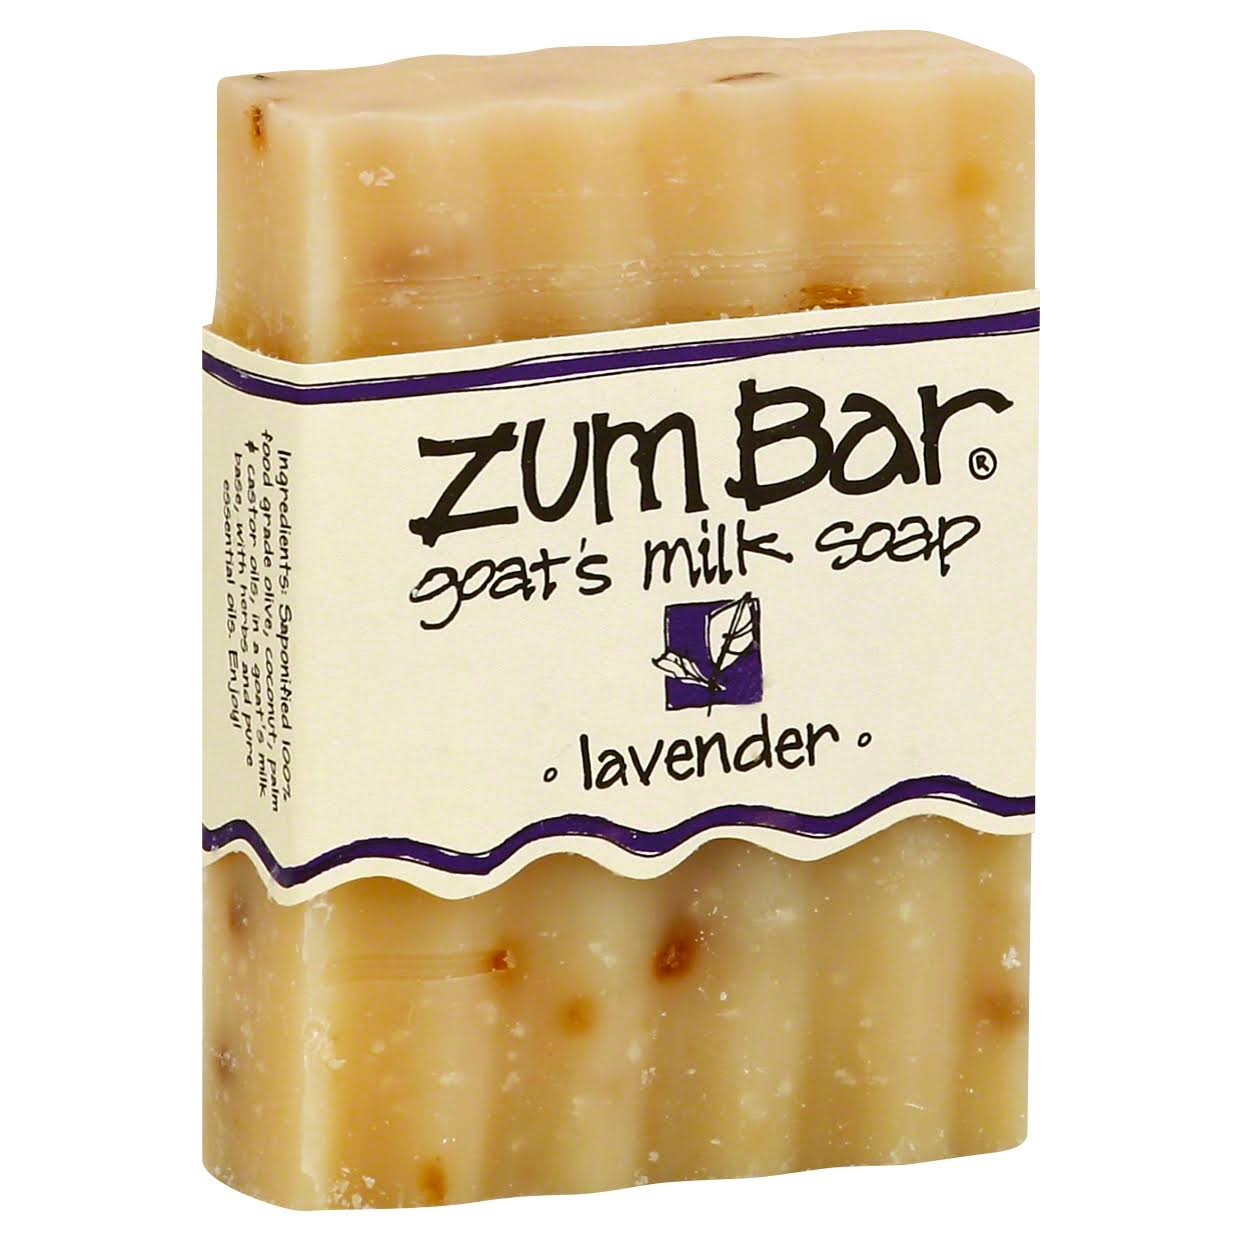 Zum Bar Goat's Milk Soap - Lavender